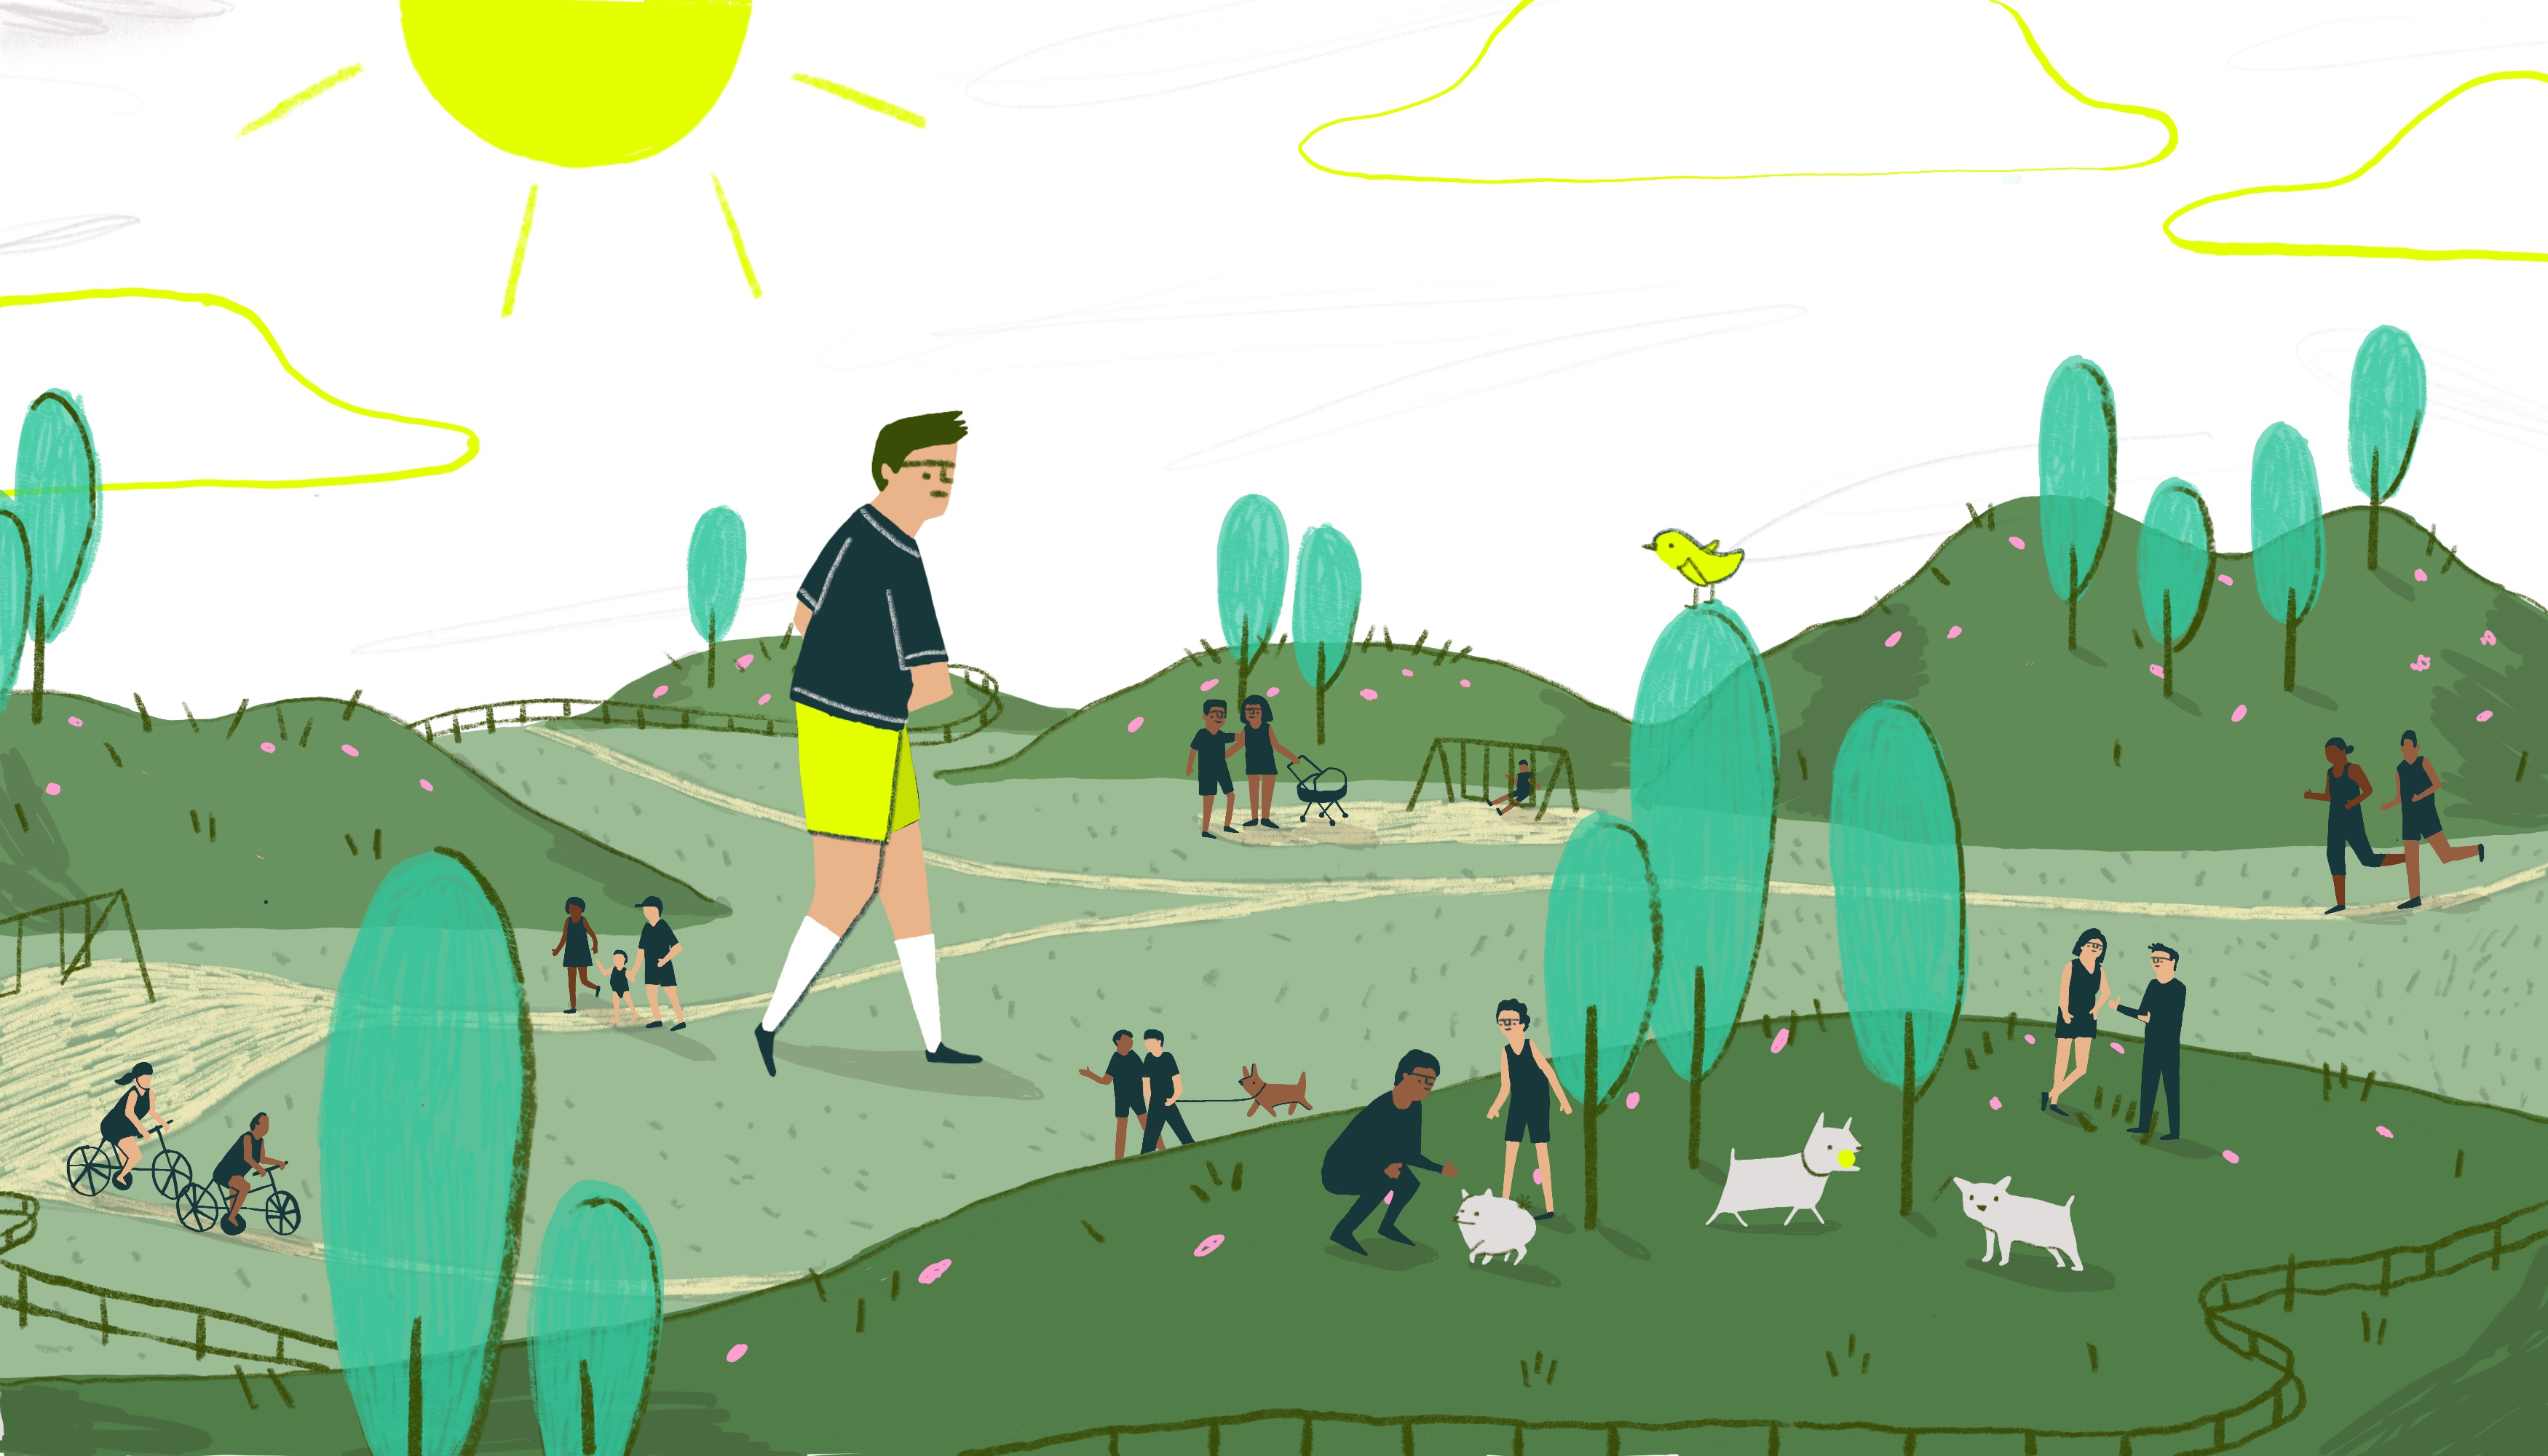 A boy in yellow shorts explores a park scene. There are trees, hills small fences, and pathways surrounding him. He is walking alone, separate from the groups of kids and animals playing around him. Illustration.